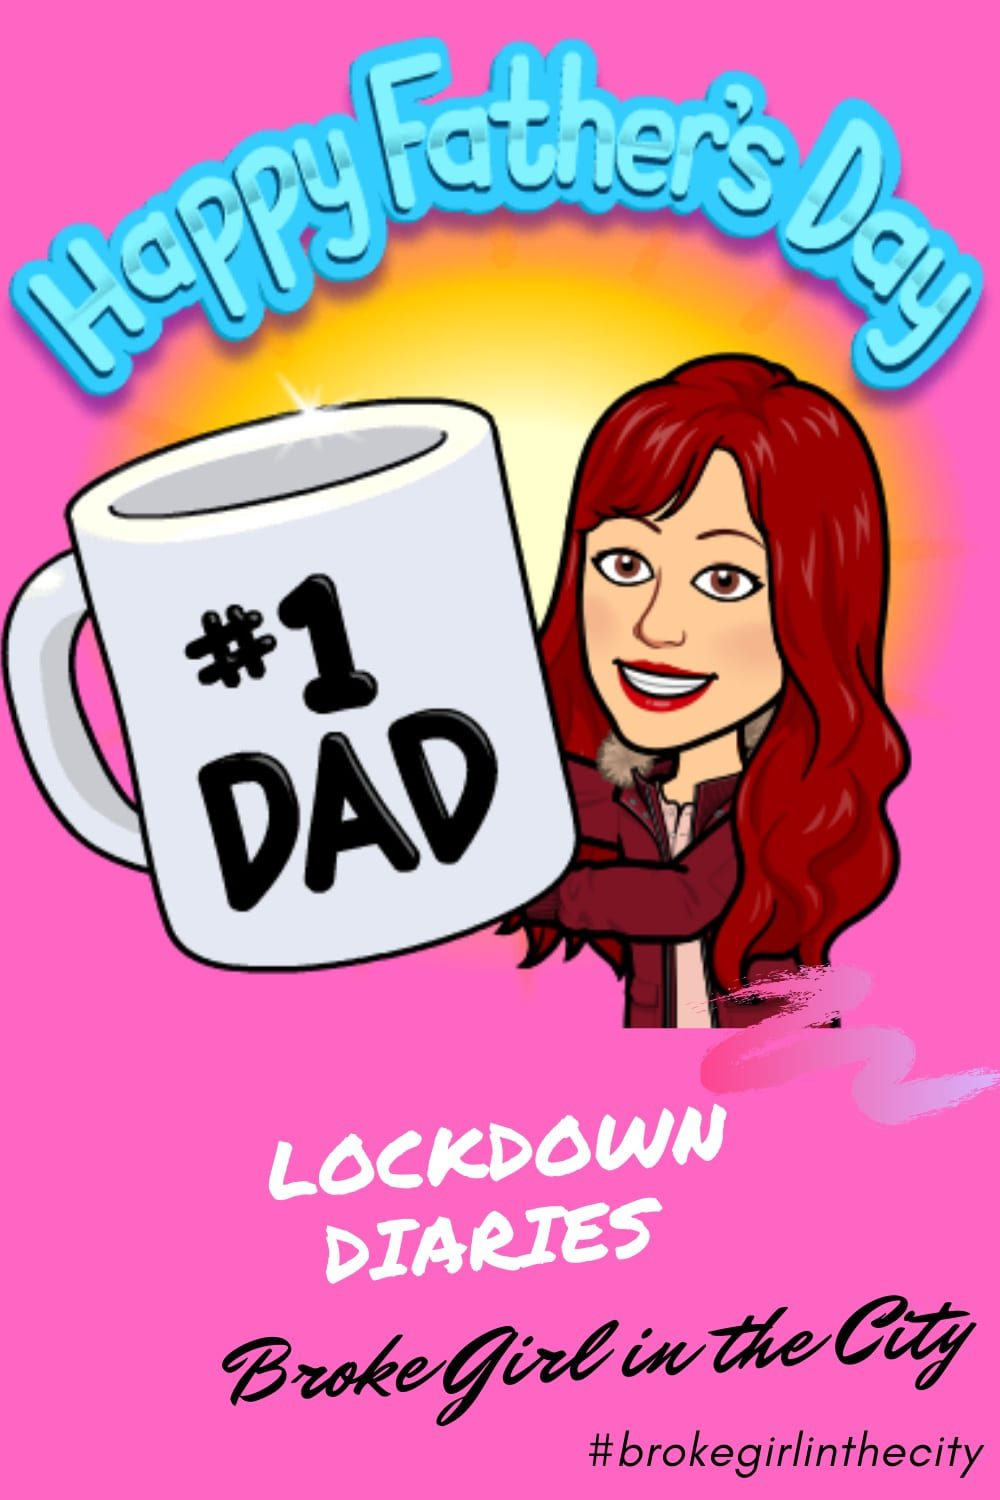 Lockdown Diaries: Happy Father's Day to dads everywhere.